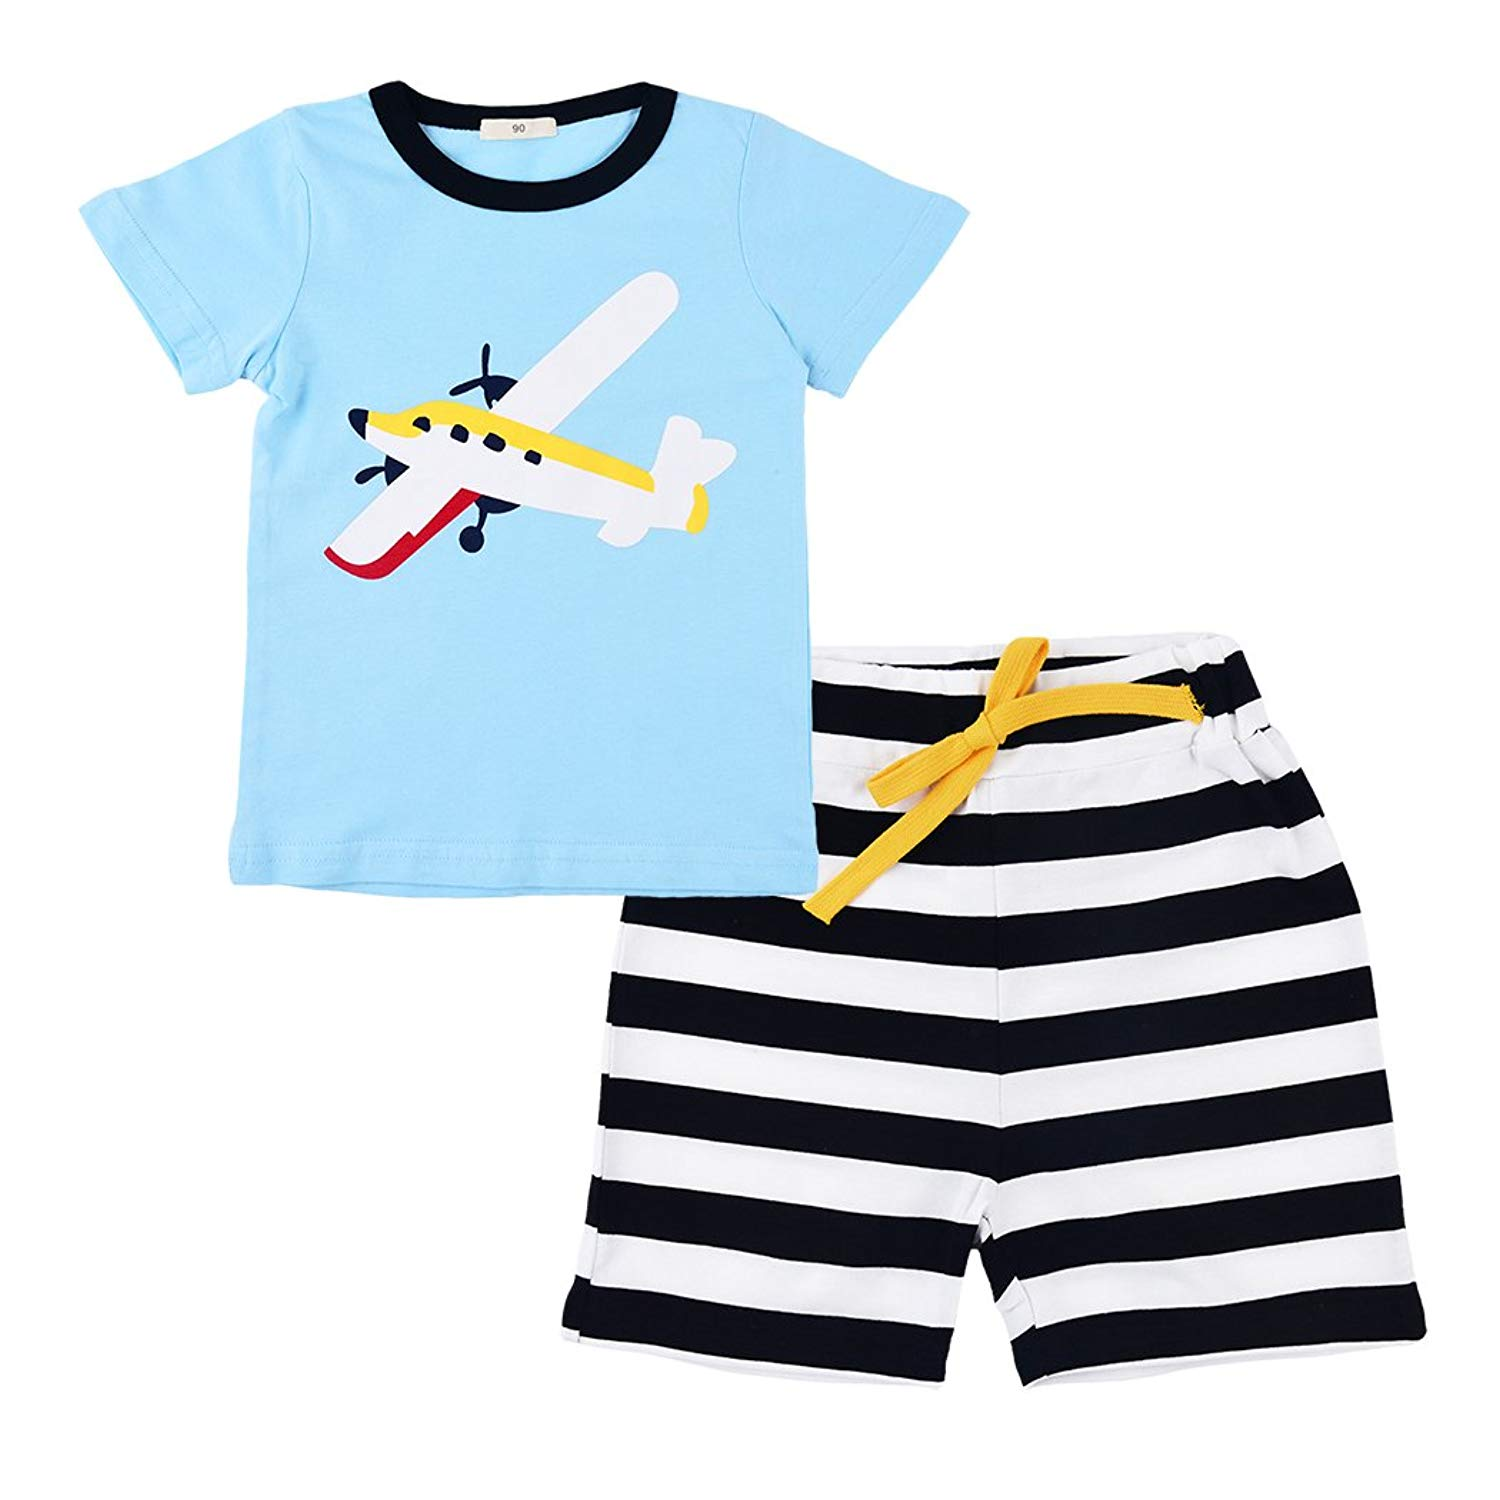 a0ea856968a Get Quotations · Popshion Kids Pajama Shorts Pajamas for Boys Toddler  Cotton Sleepwears Summer Clothes 2T-7T